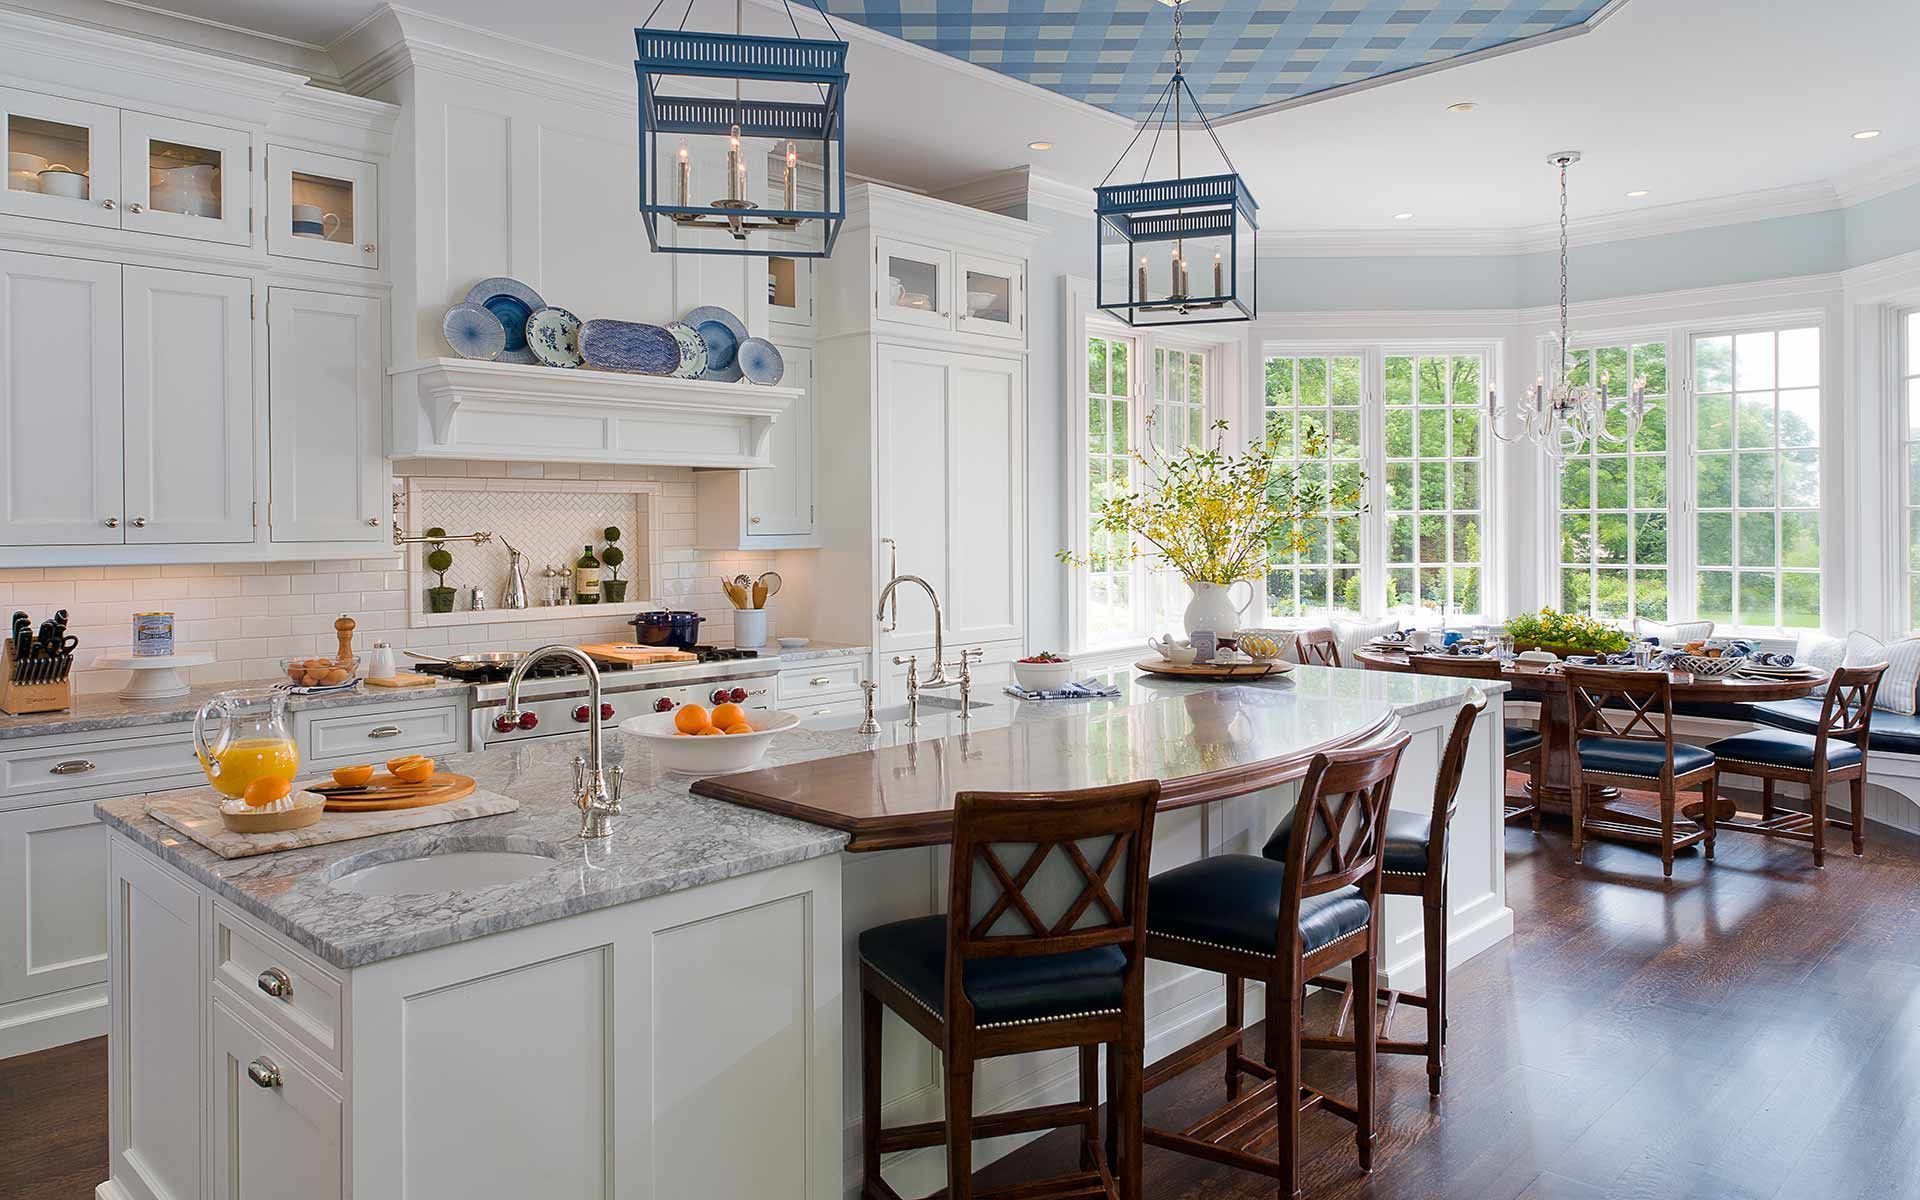 Deane Inc Kitchen With Custom Cabinetry Marble Countertops And Wooden Countertop Br Traditional Kitchen Design Kitchen Countertop Choices Kitchen Inspirations